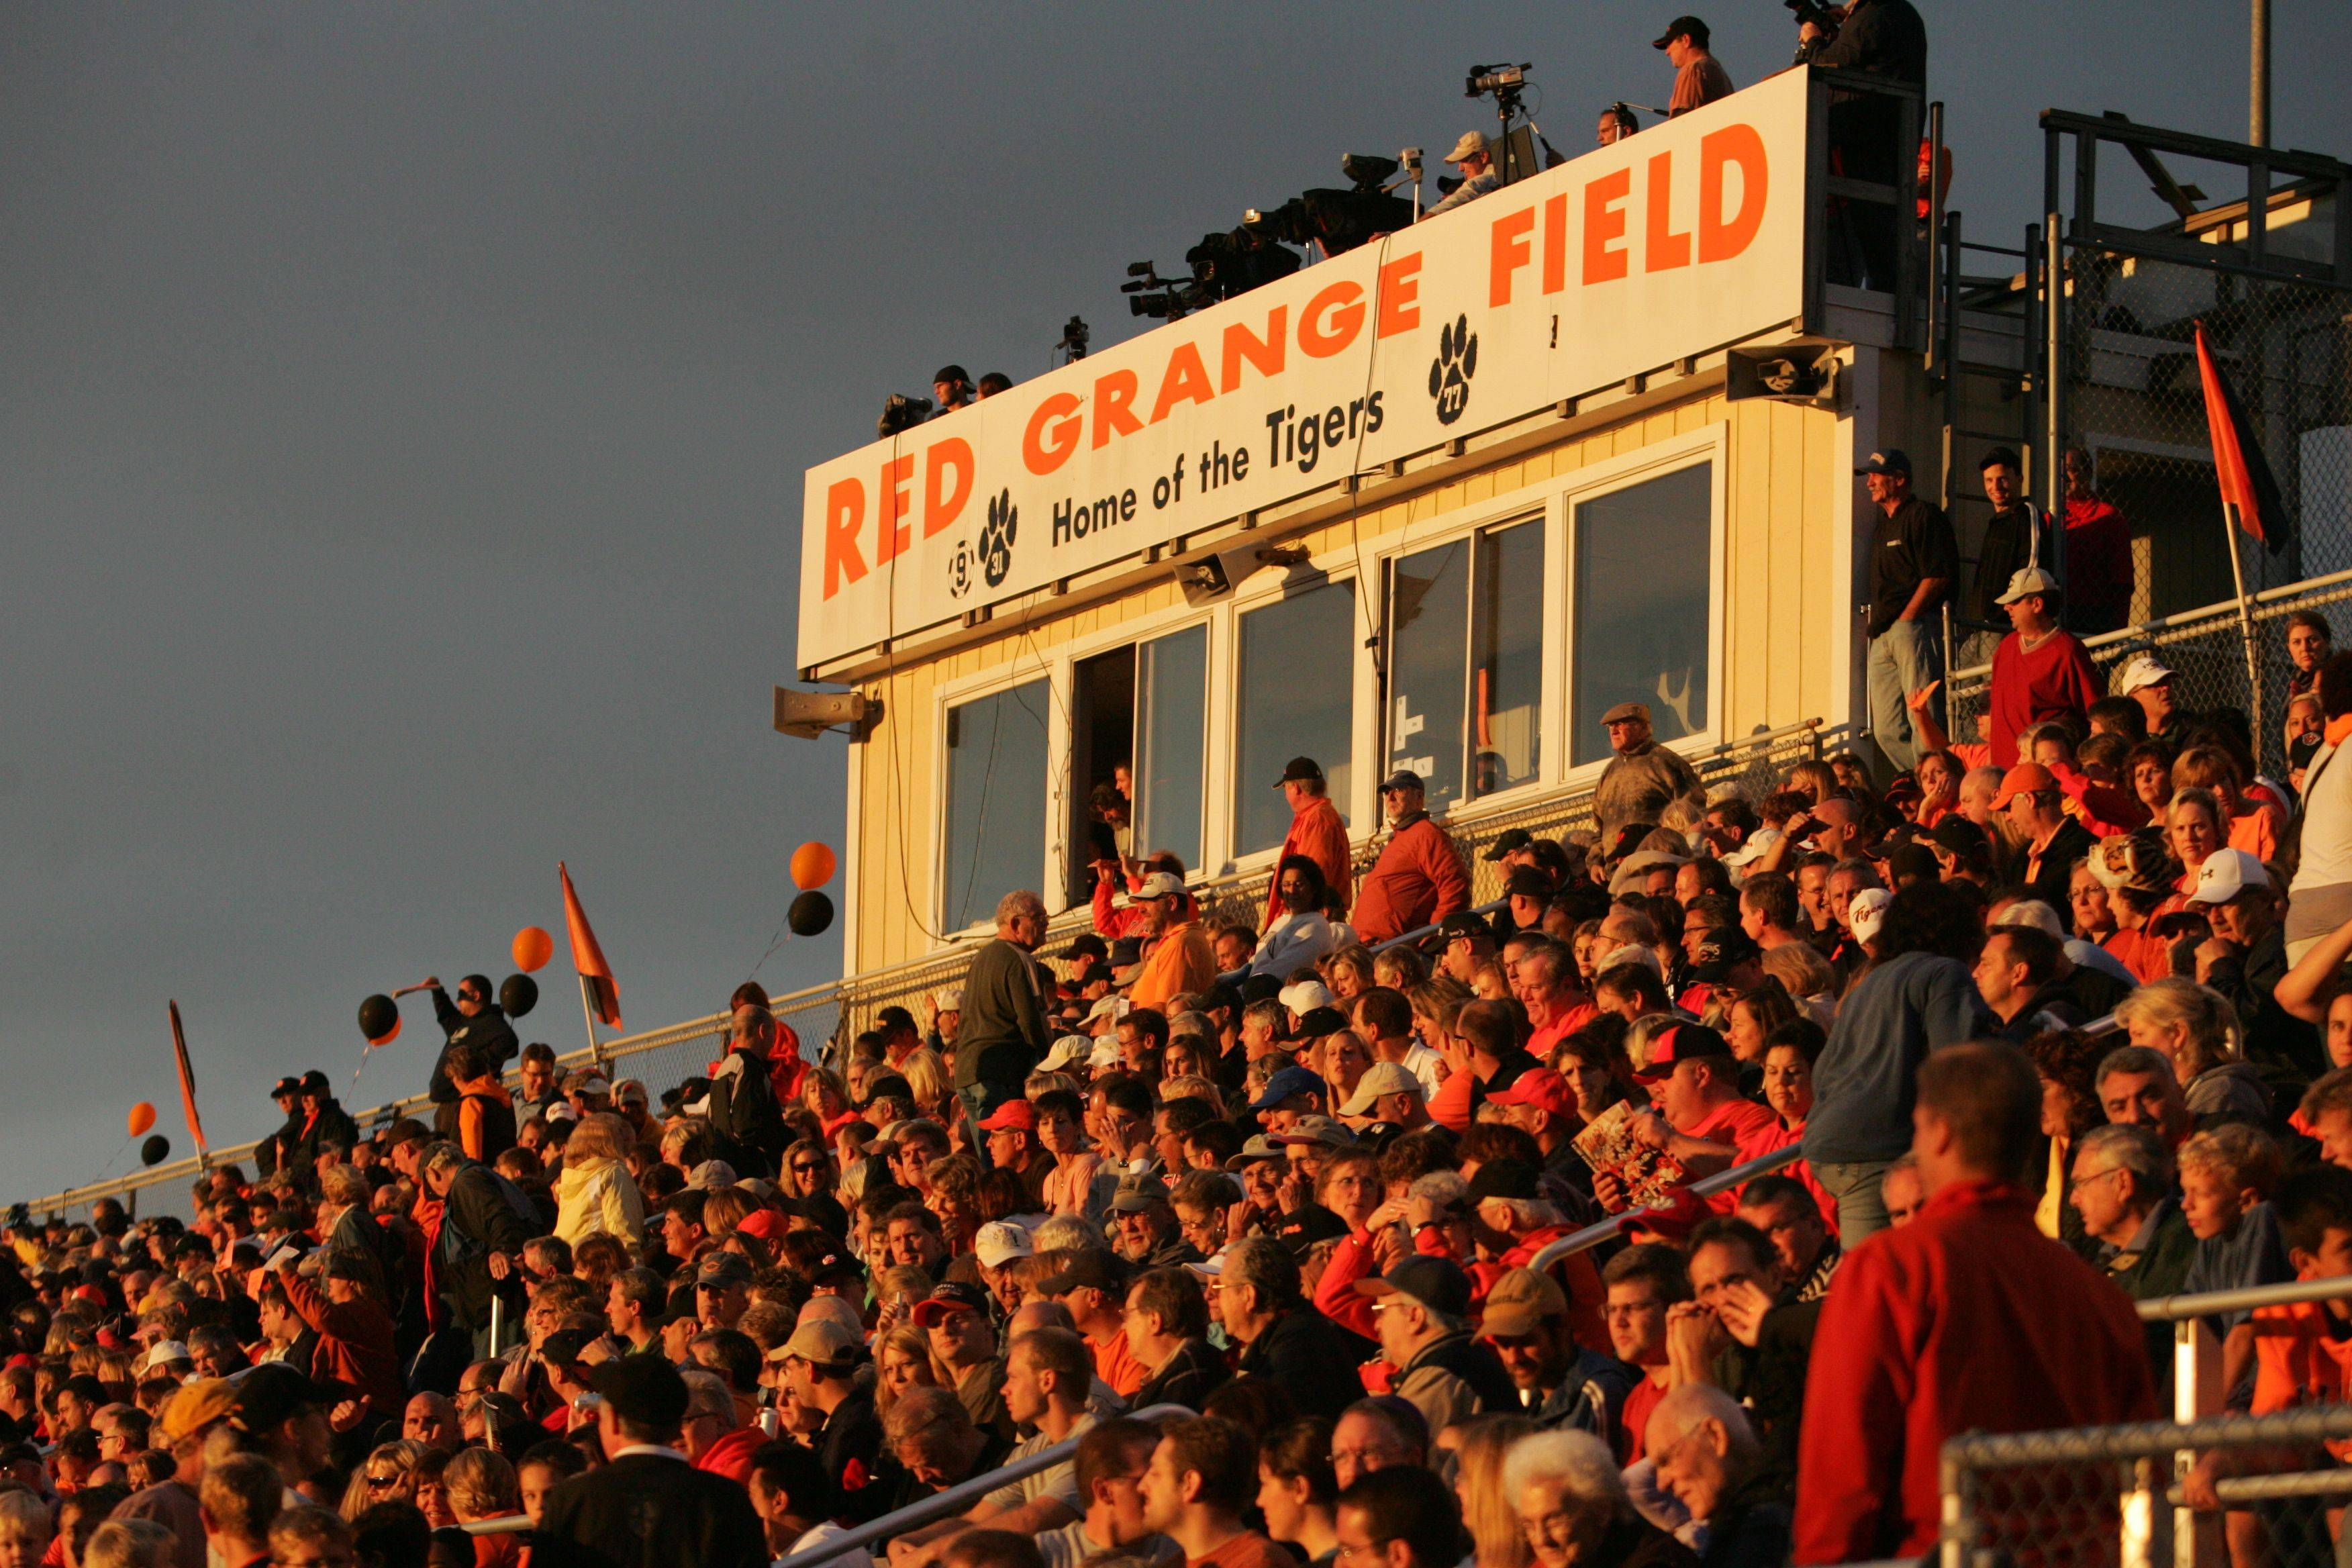 Big crowds are expected Sunday morning at Red Grange Field for Wheaton Warrenville South's nationally-televised football game against Glenbard West.